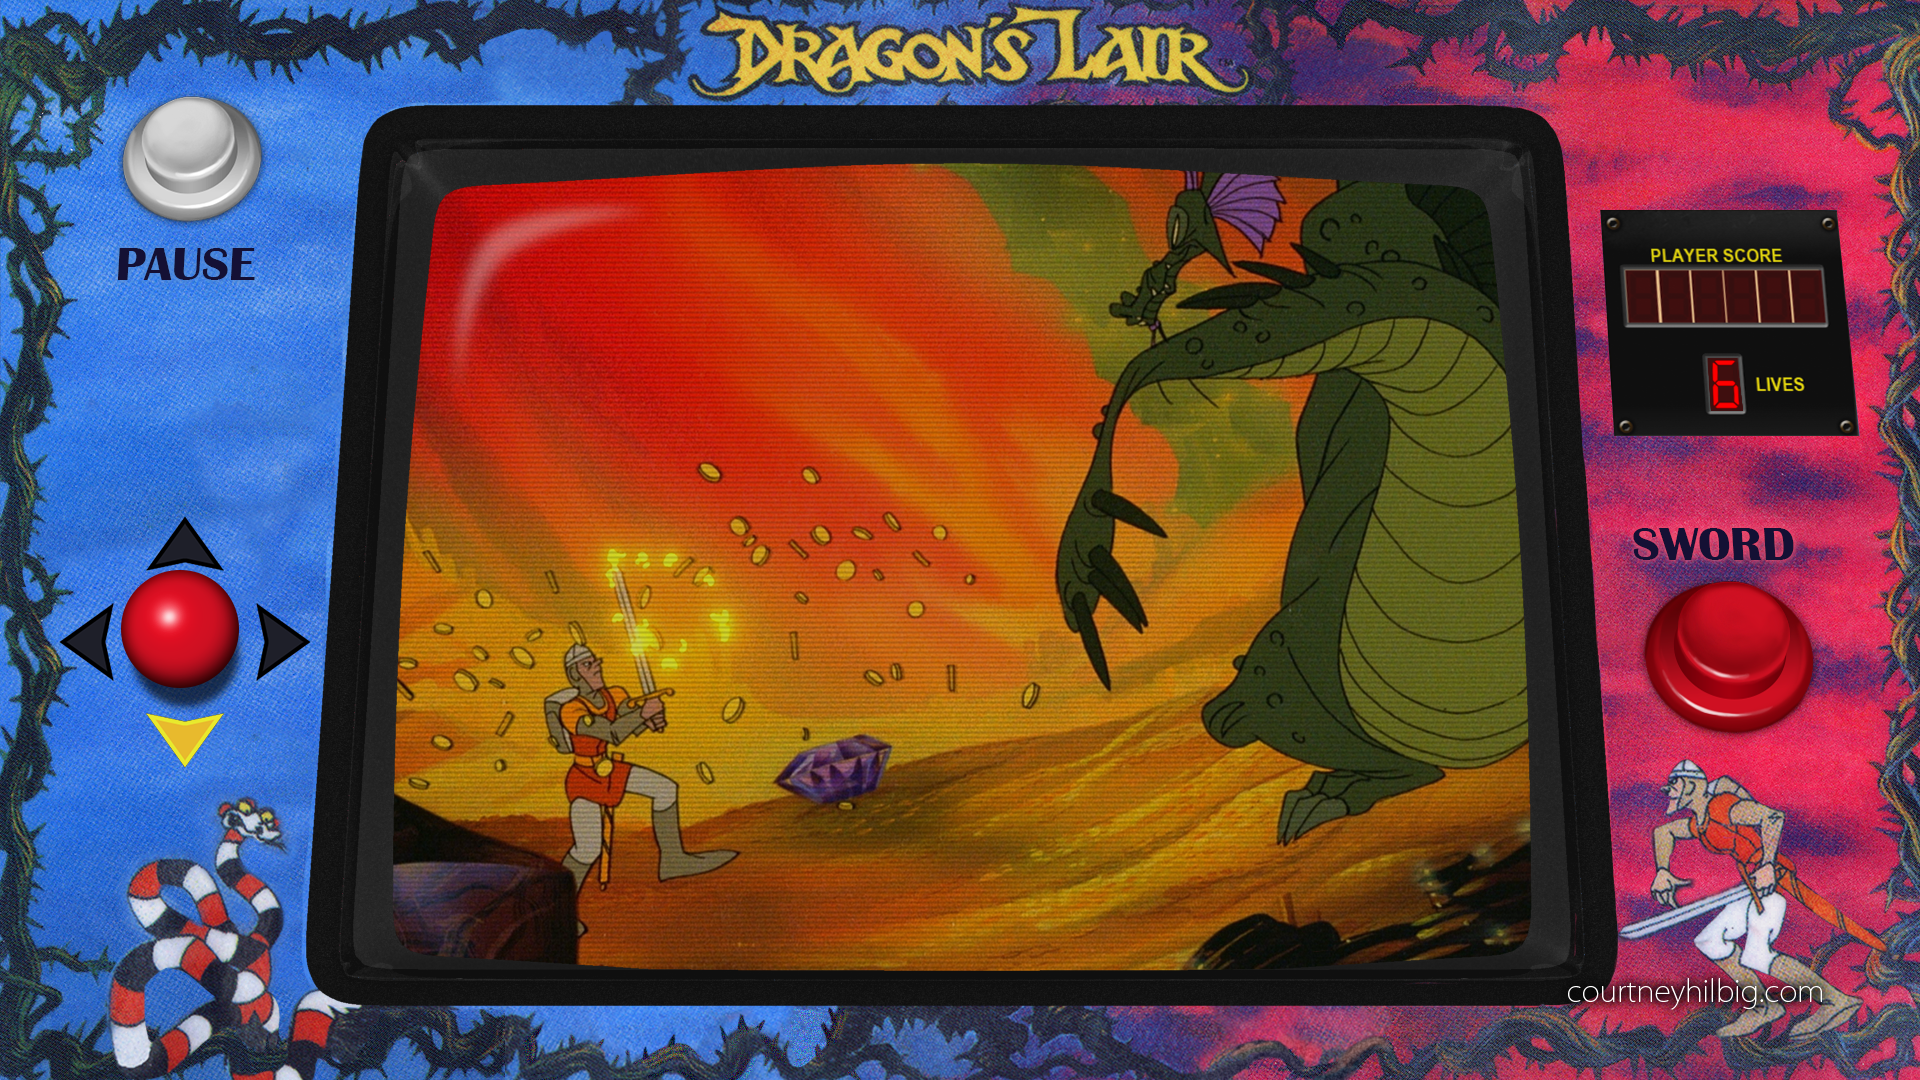 Dragon's Lair Arcade Mode